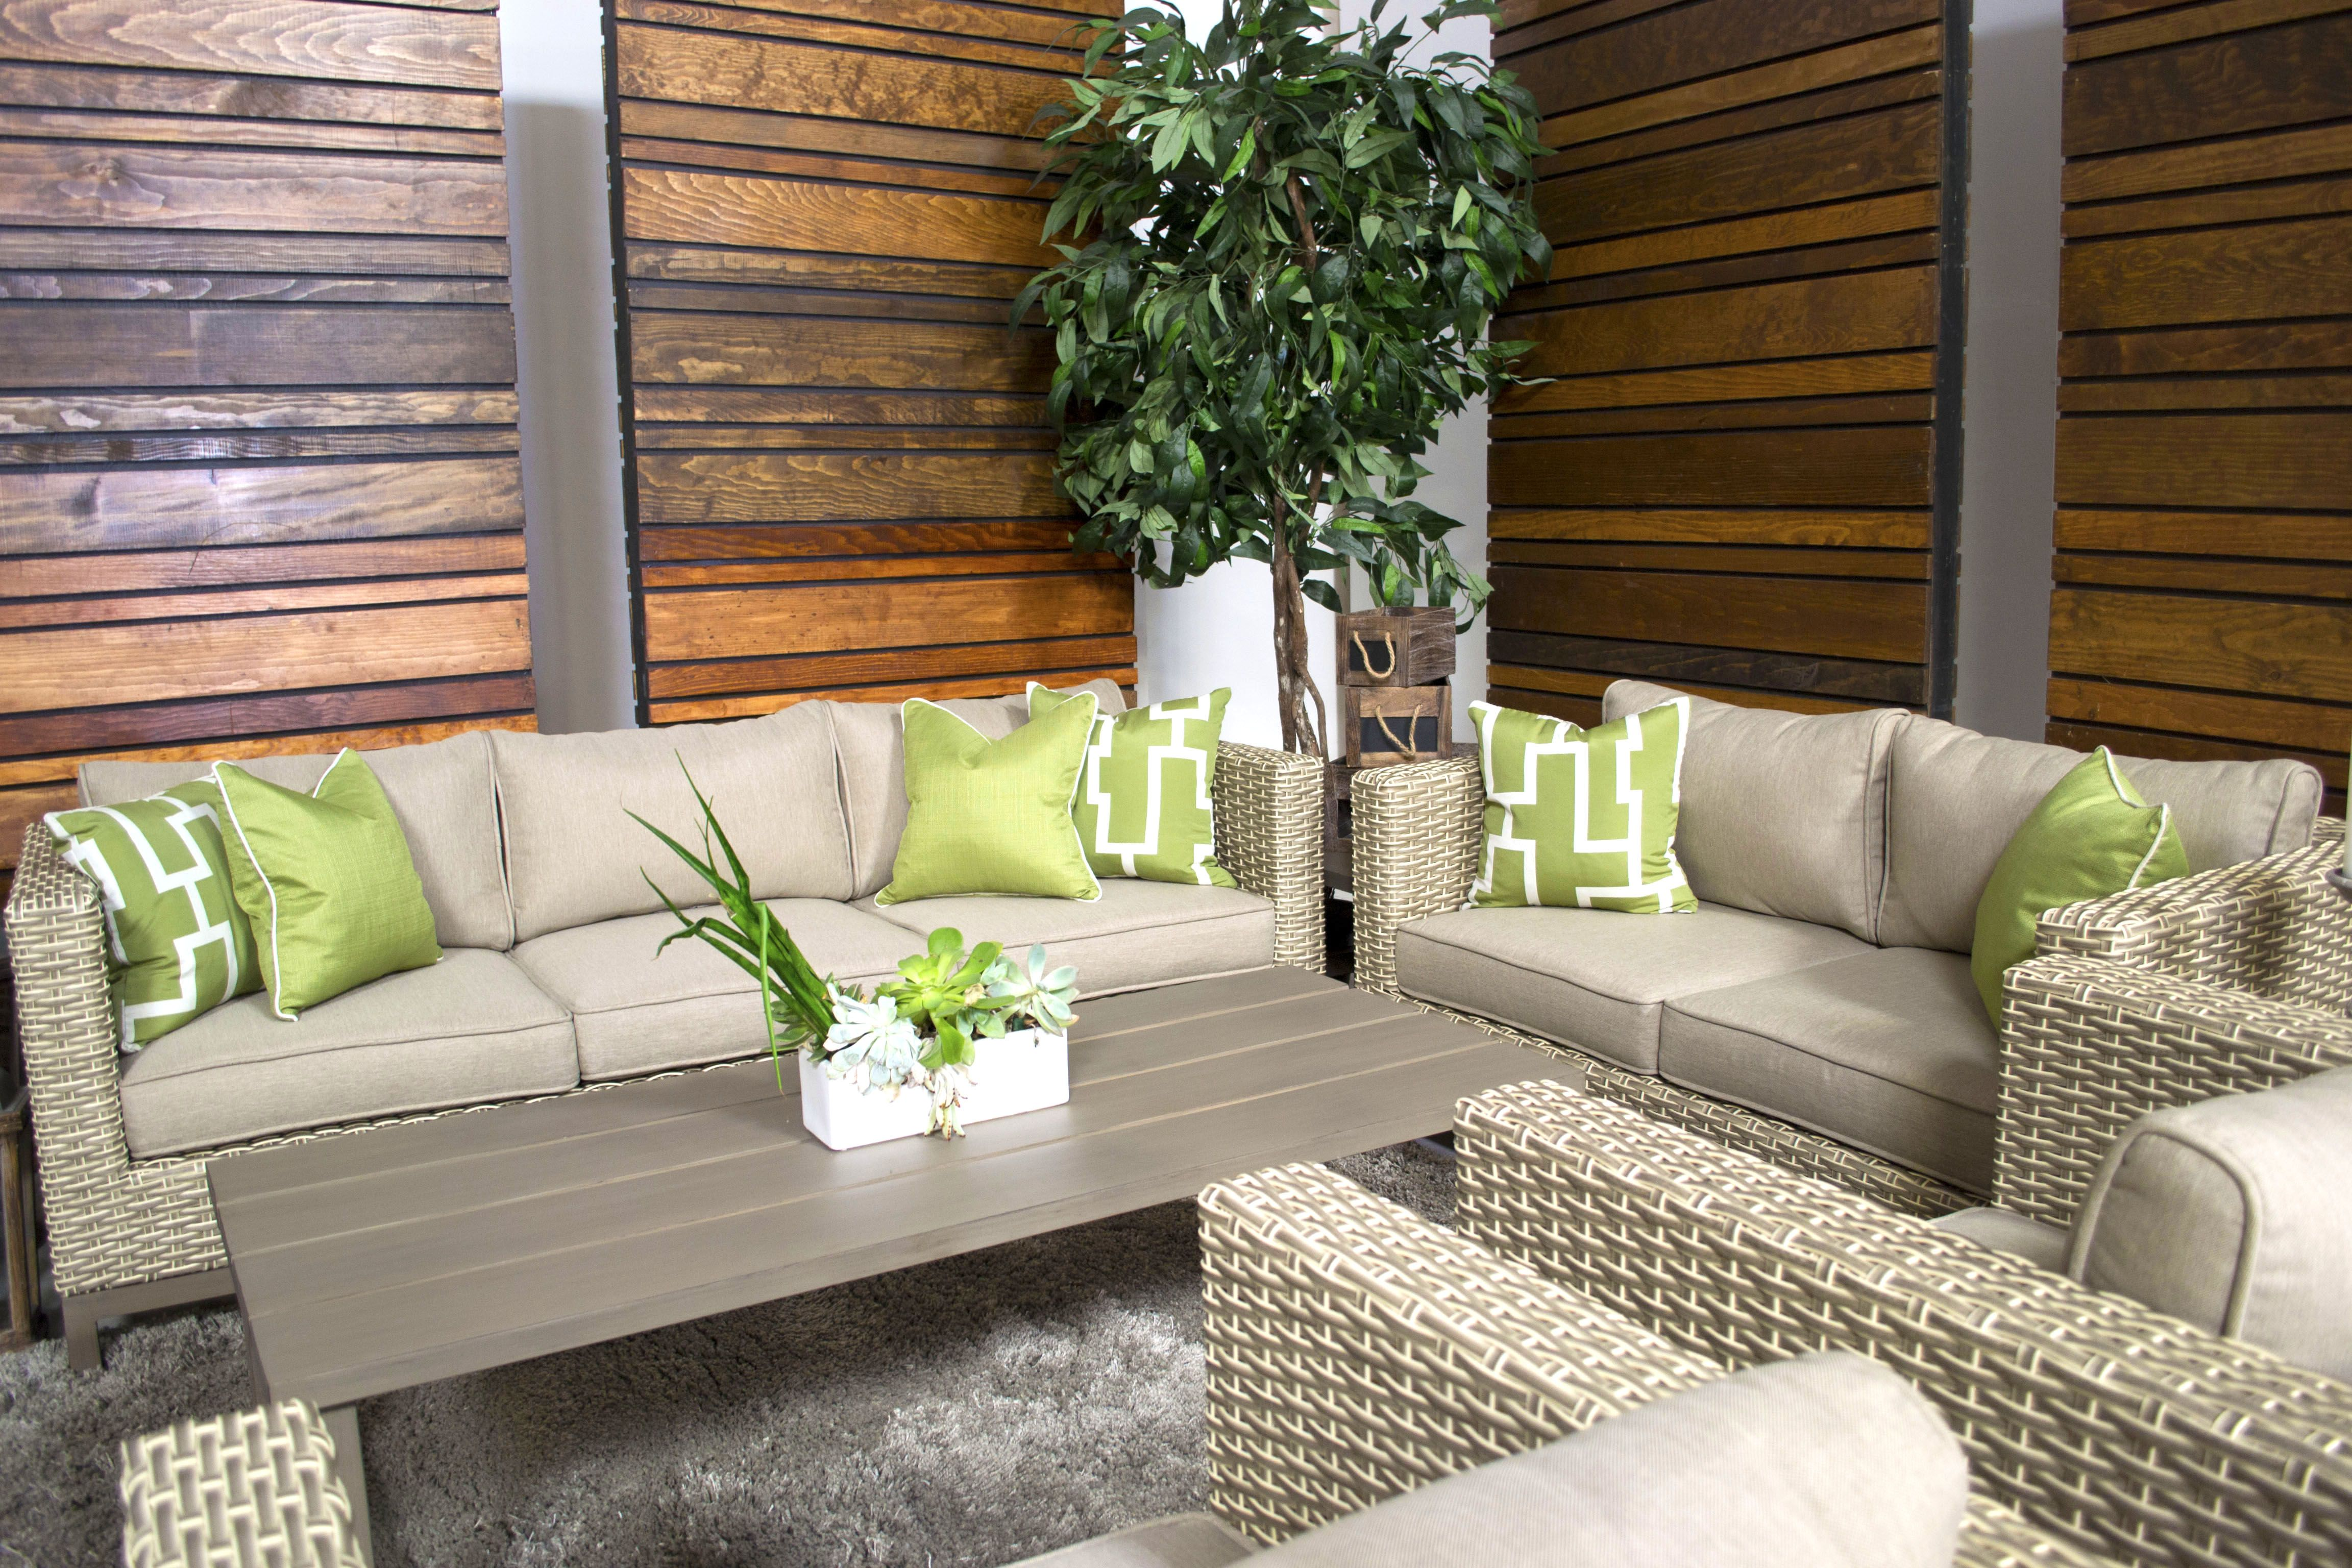 Barbados Outdoor Seating And Table Collection Furniture Rental